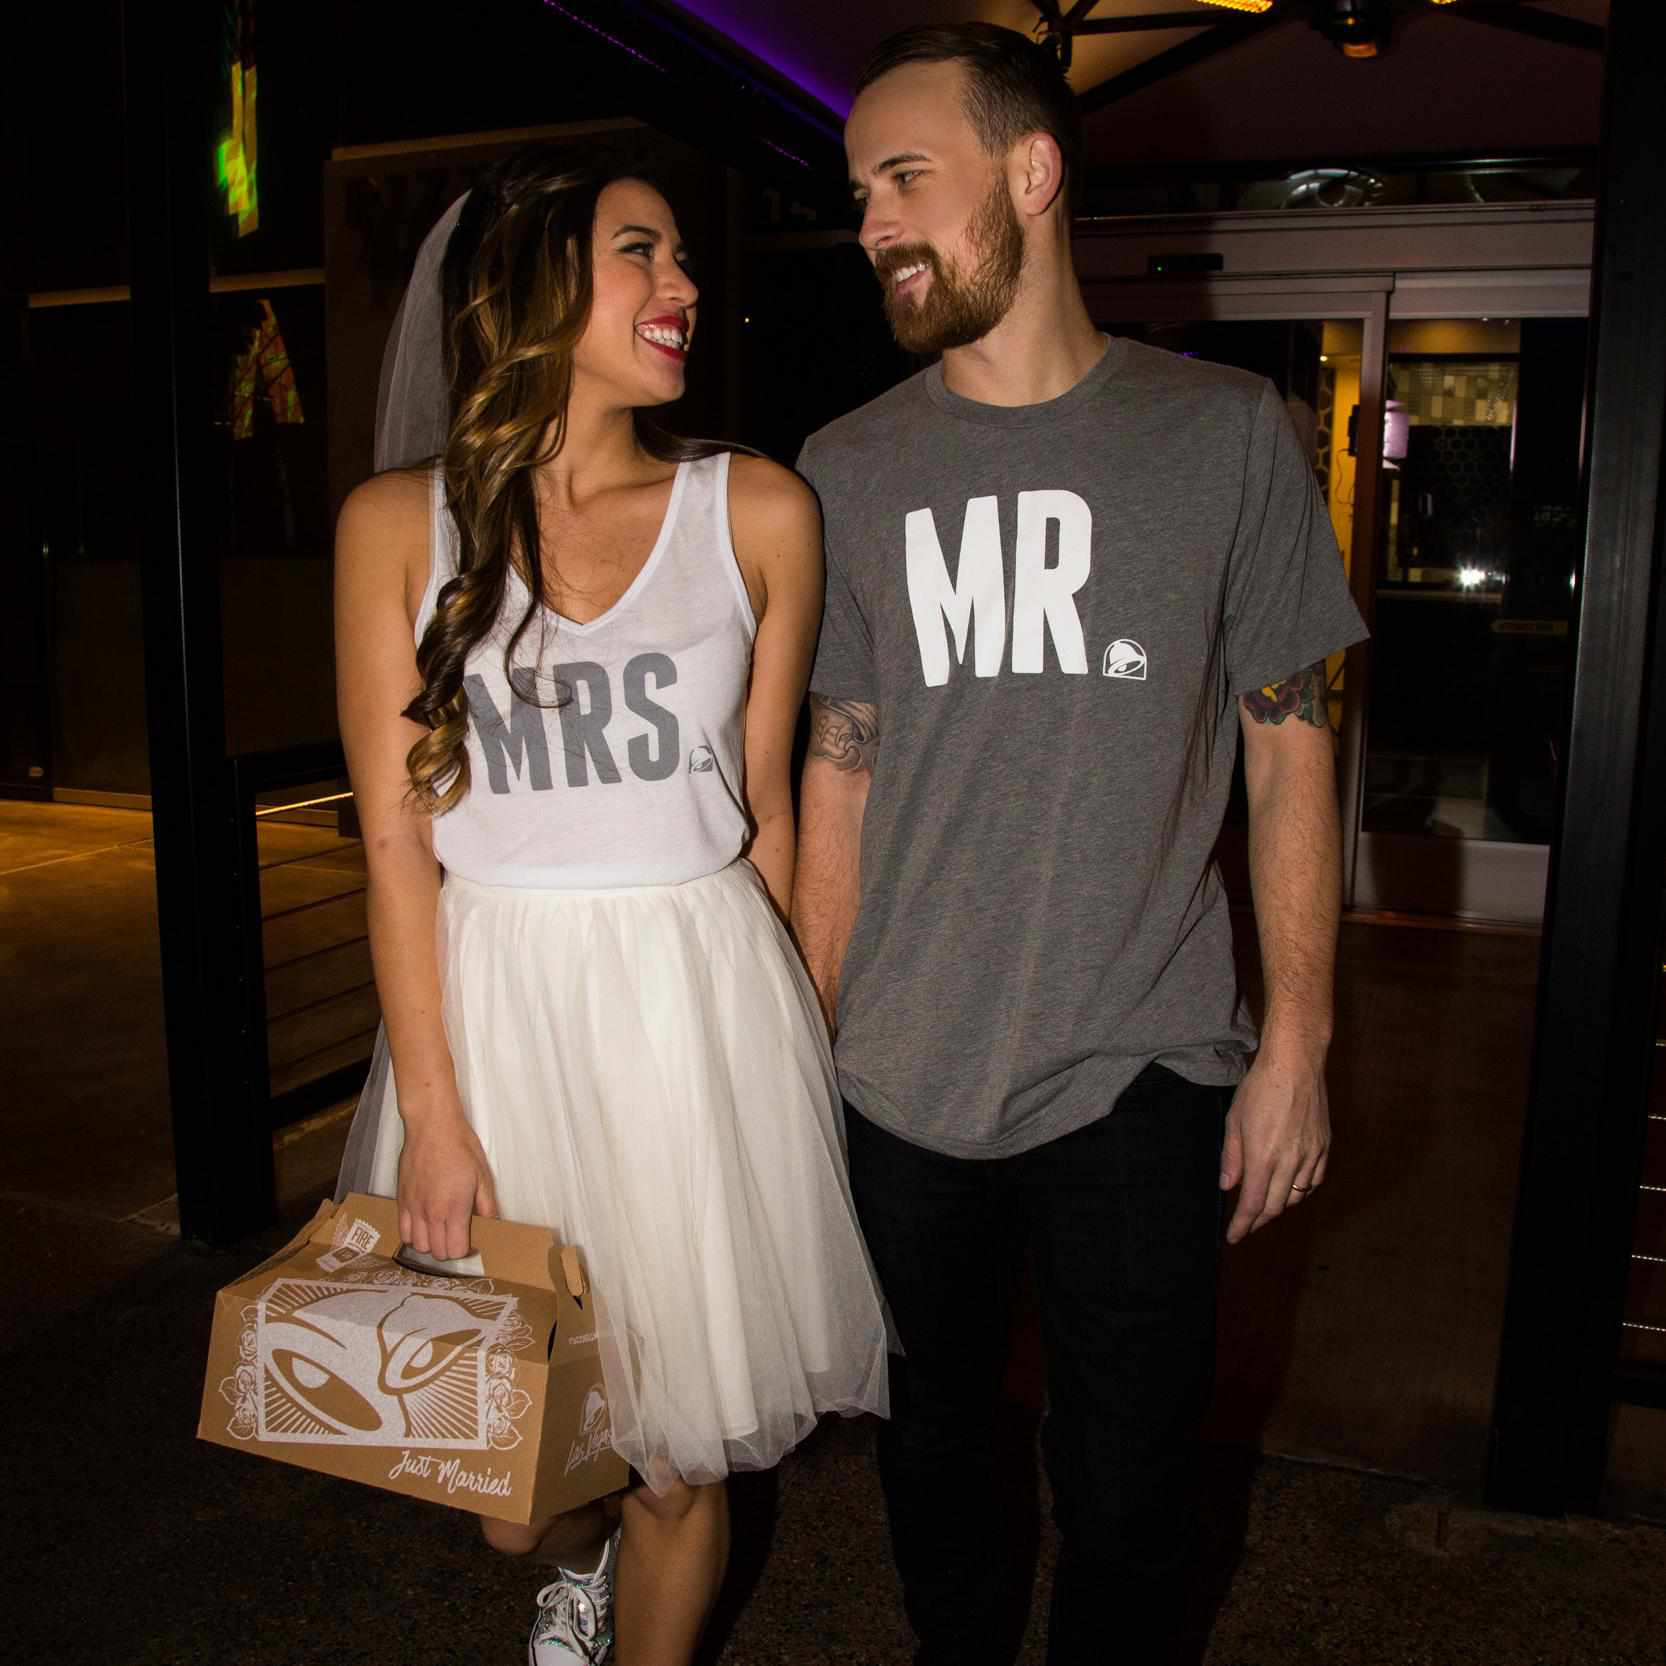 Taco Bell Wedding.Taco Bell S New Wedding Merchandise Is What Your Big Day Is Missing